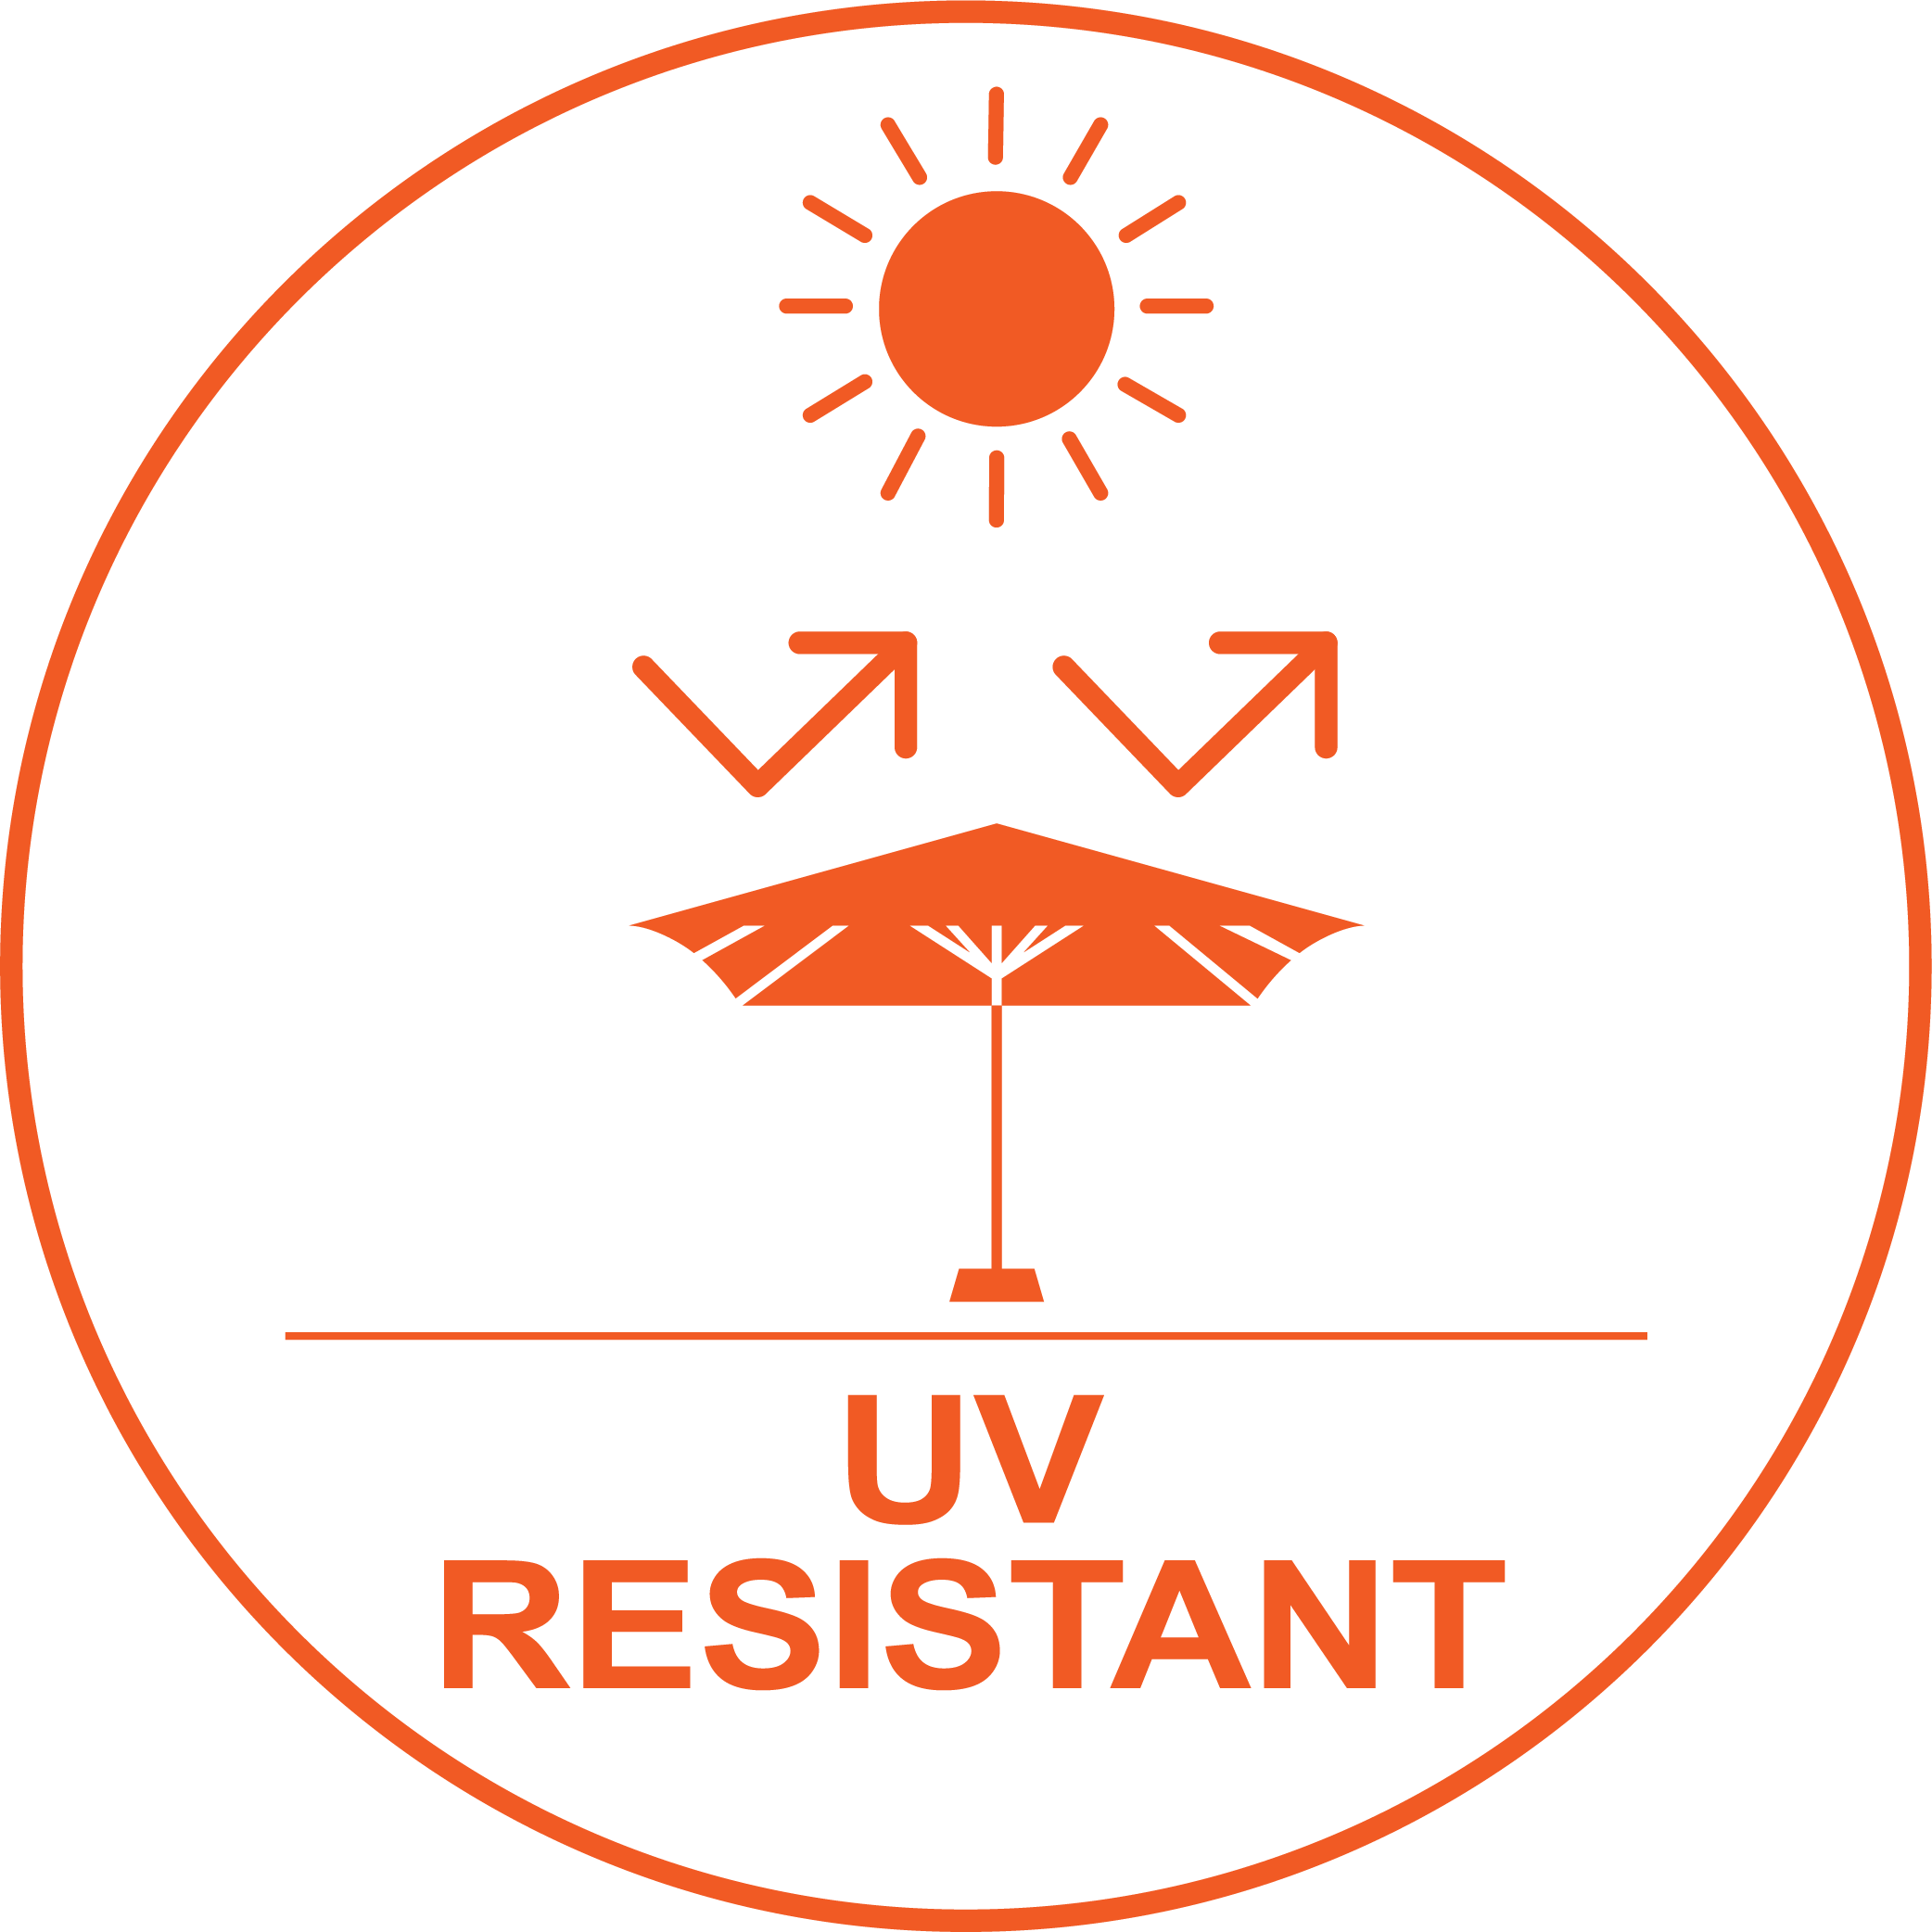 uv resistant new.png